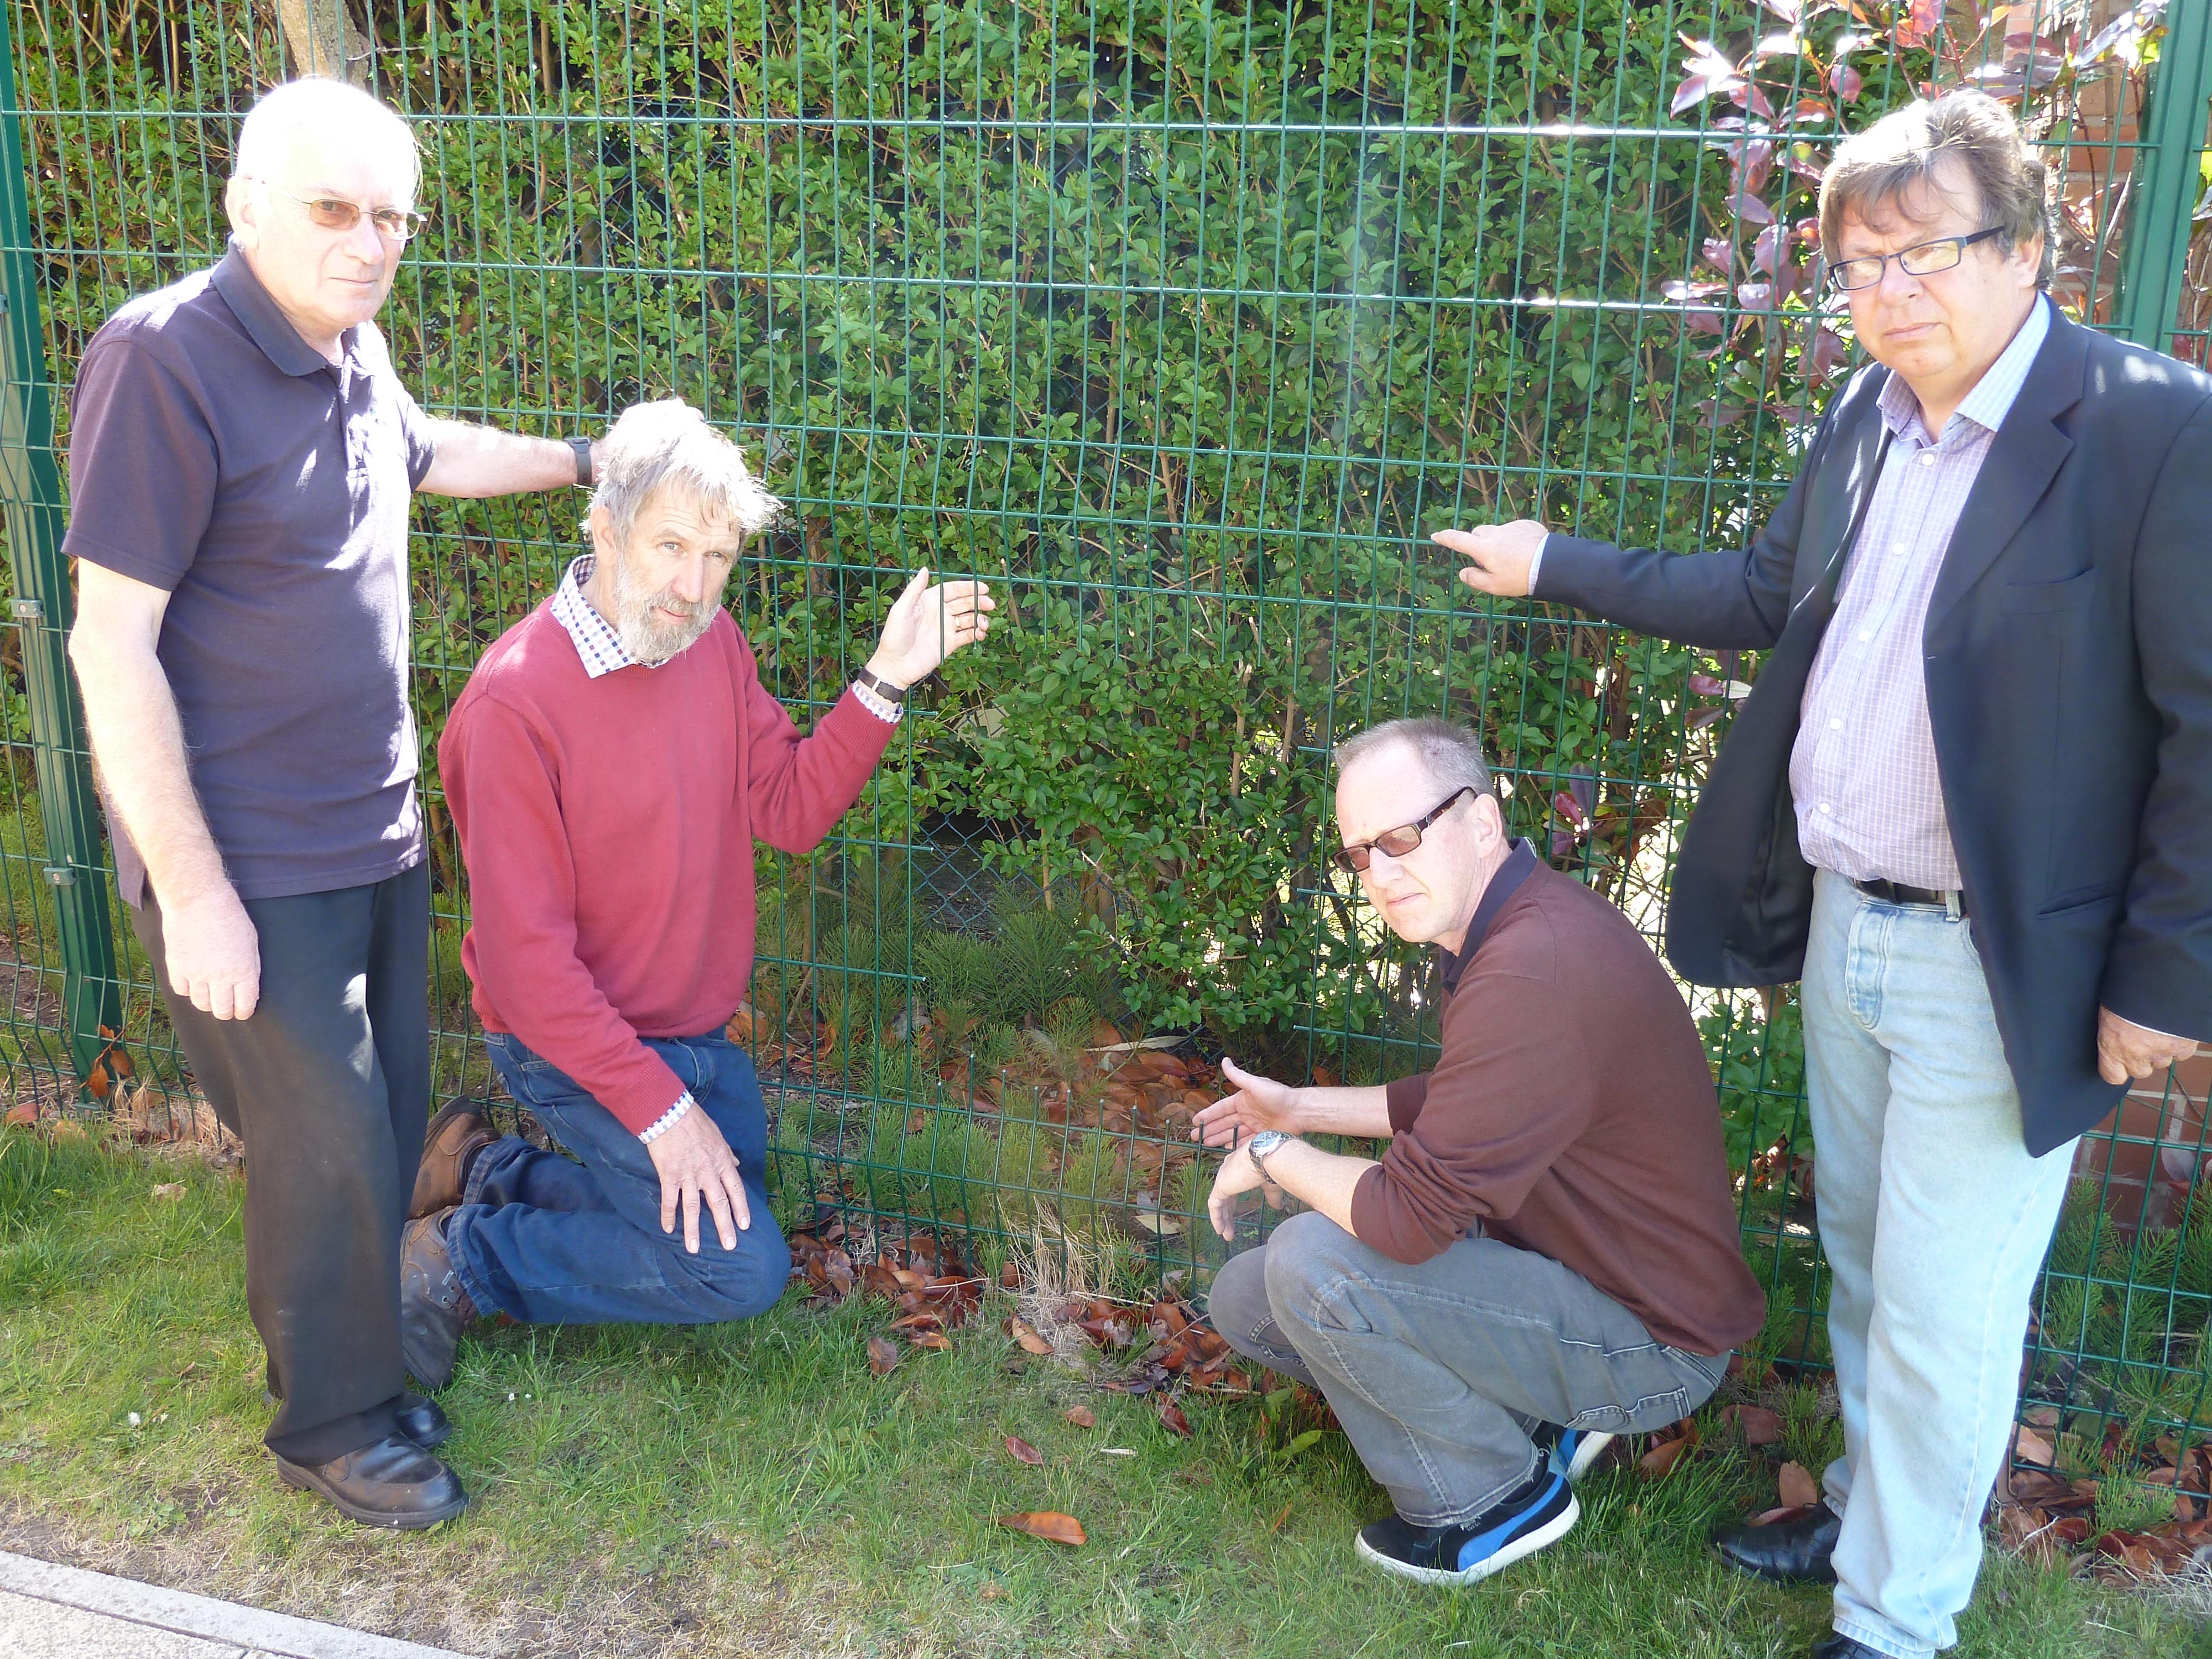 Lydiate Parish Council chairman Cllr John Bailey and vice chairman Cllr Andy Wilson with Lydiate Community Centre caretakers Keith Hawkins and Craig Bramwell with the recently damaged fencing.